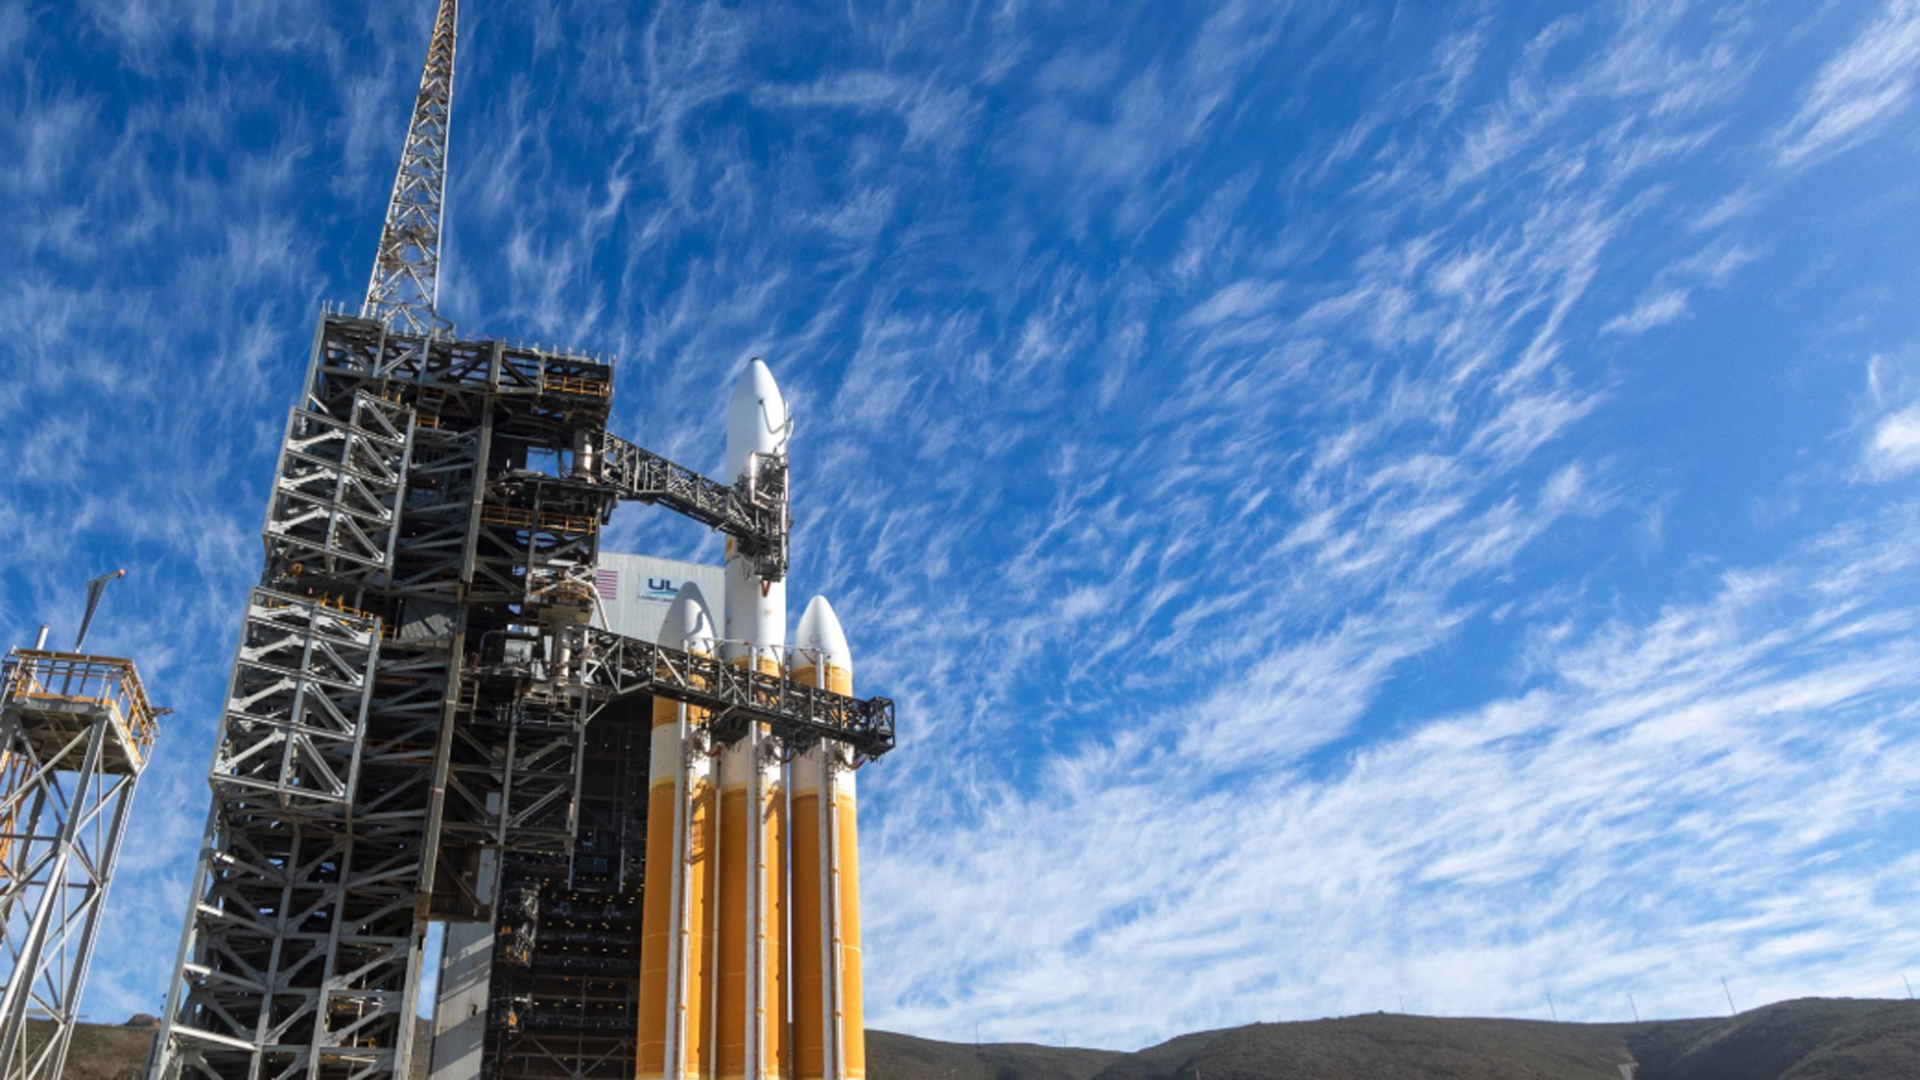 A Delta IV Heavy rocket sits on Vandenberg Air Force Base's launch pad on Dec. 19, 2018. (Credit: ULA)